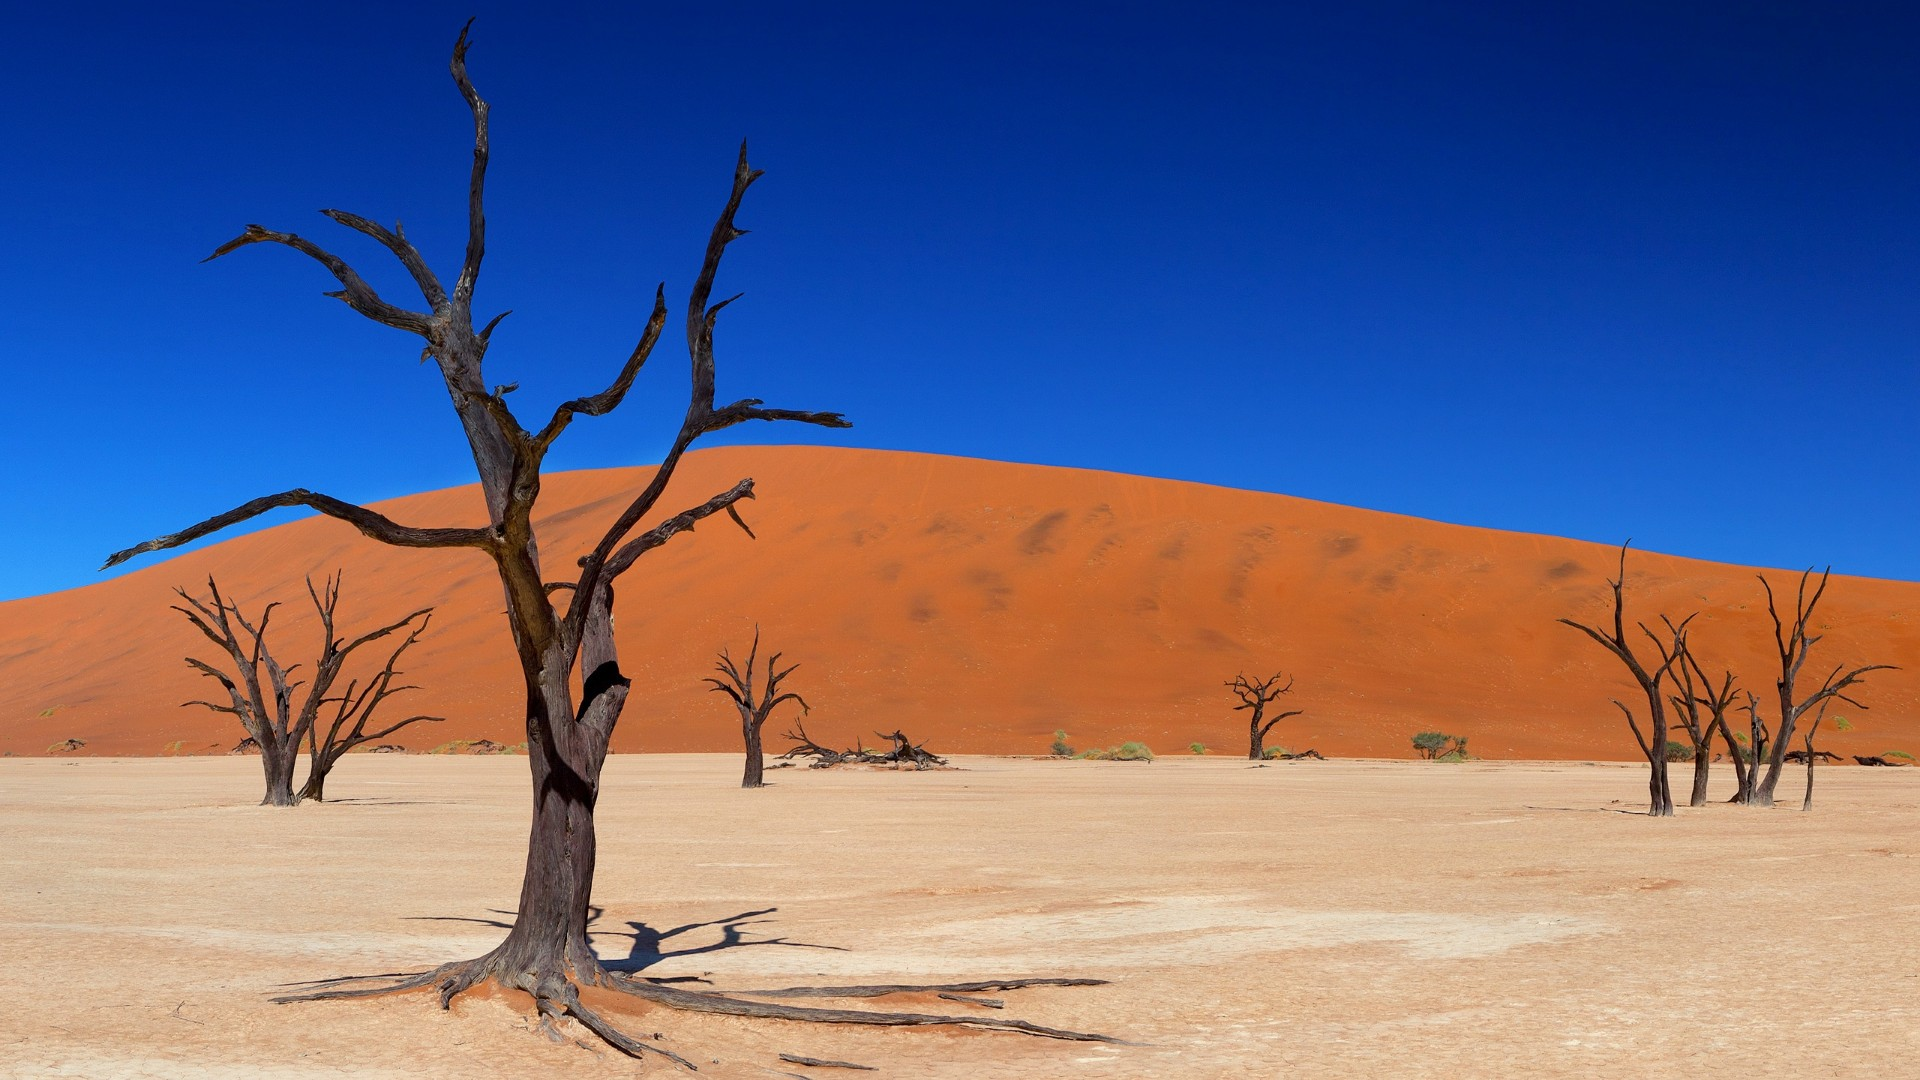 Dead Desert Trees at Dead Vlei (Dead Valley, Namibia) wallpaper